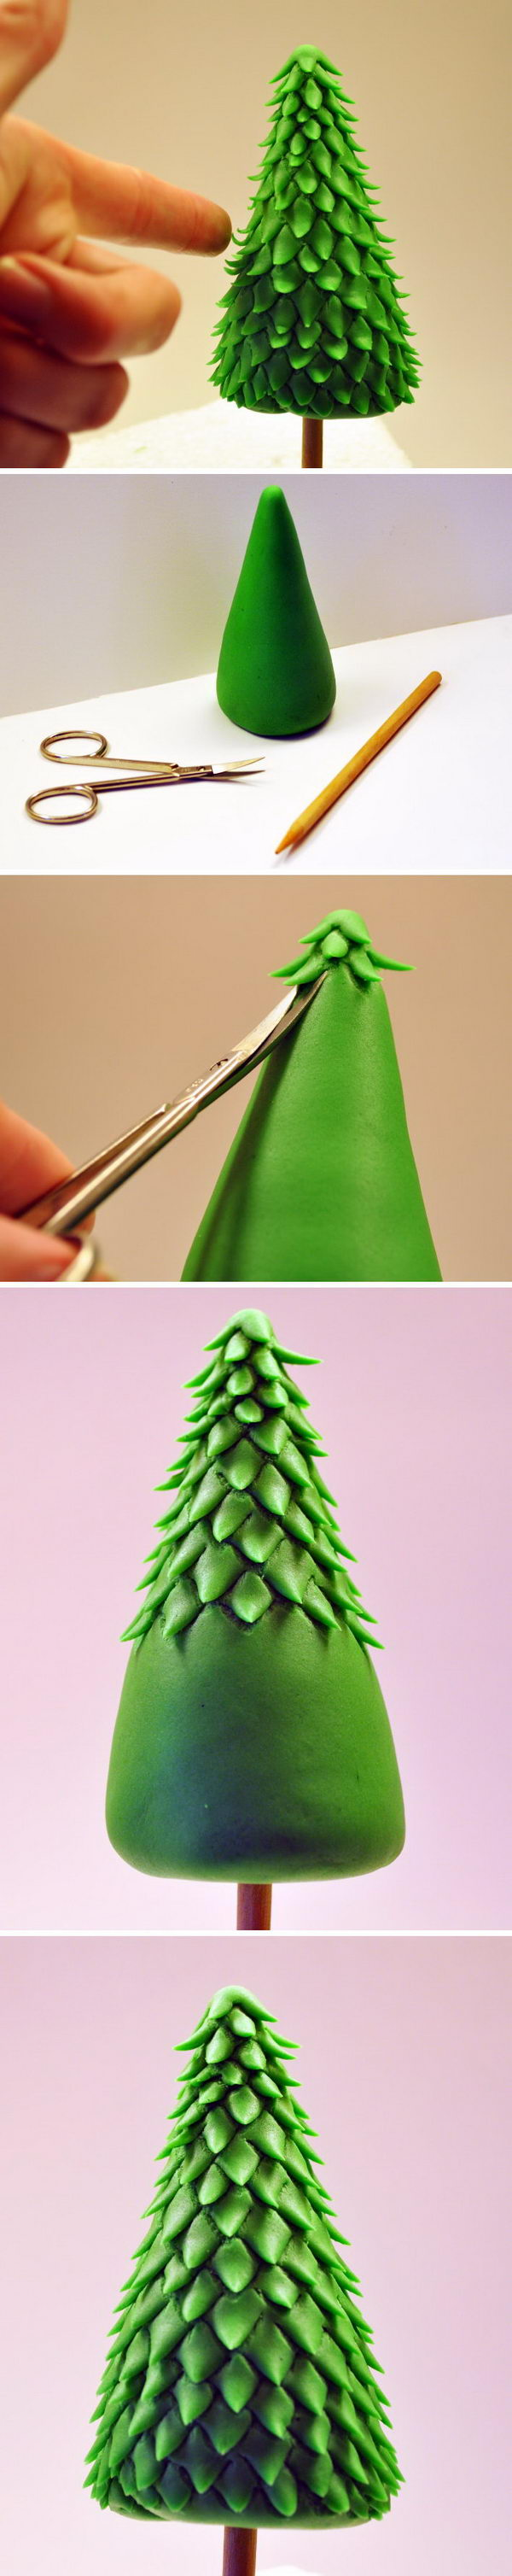 DIY Fondant Christmas Tree for Cakes at Christmas Party.